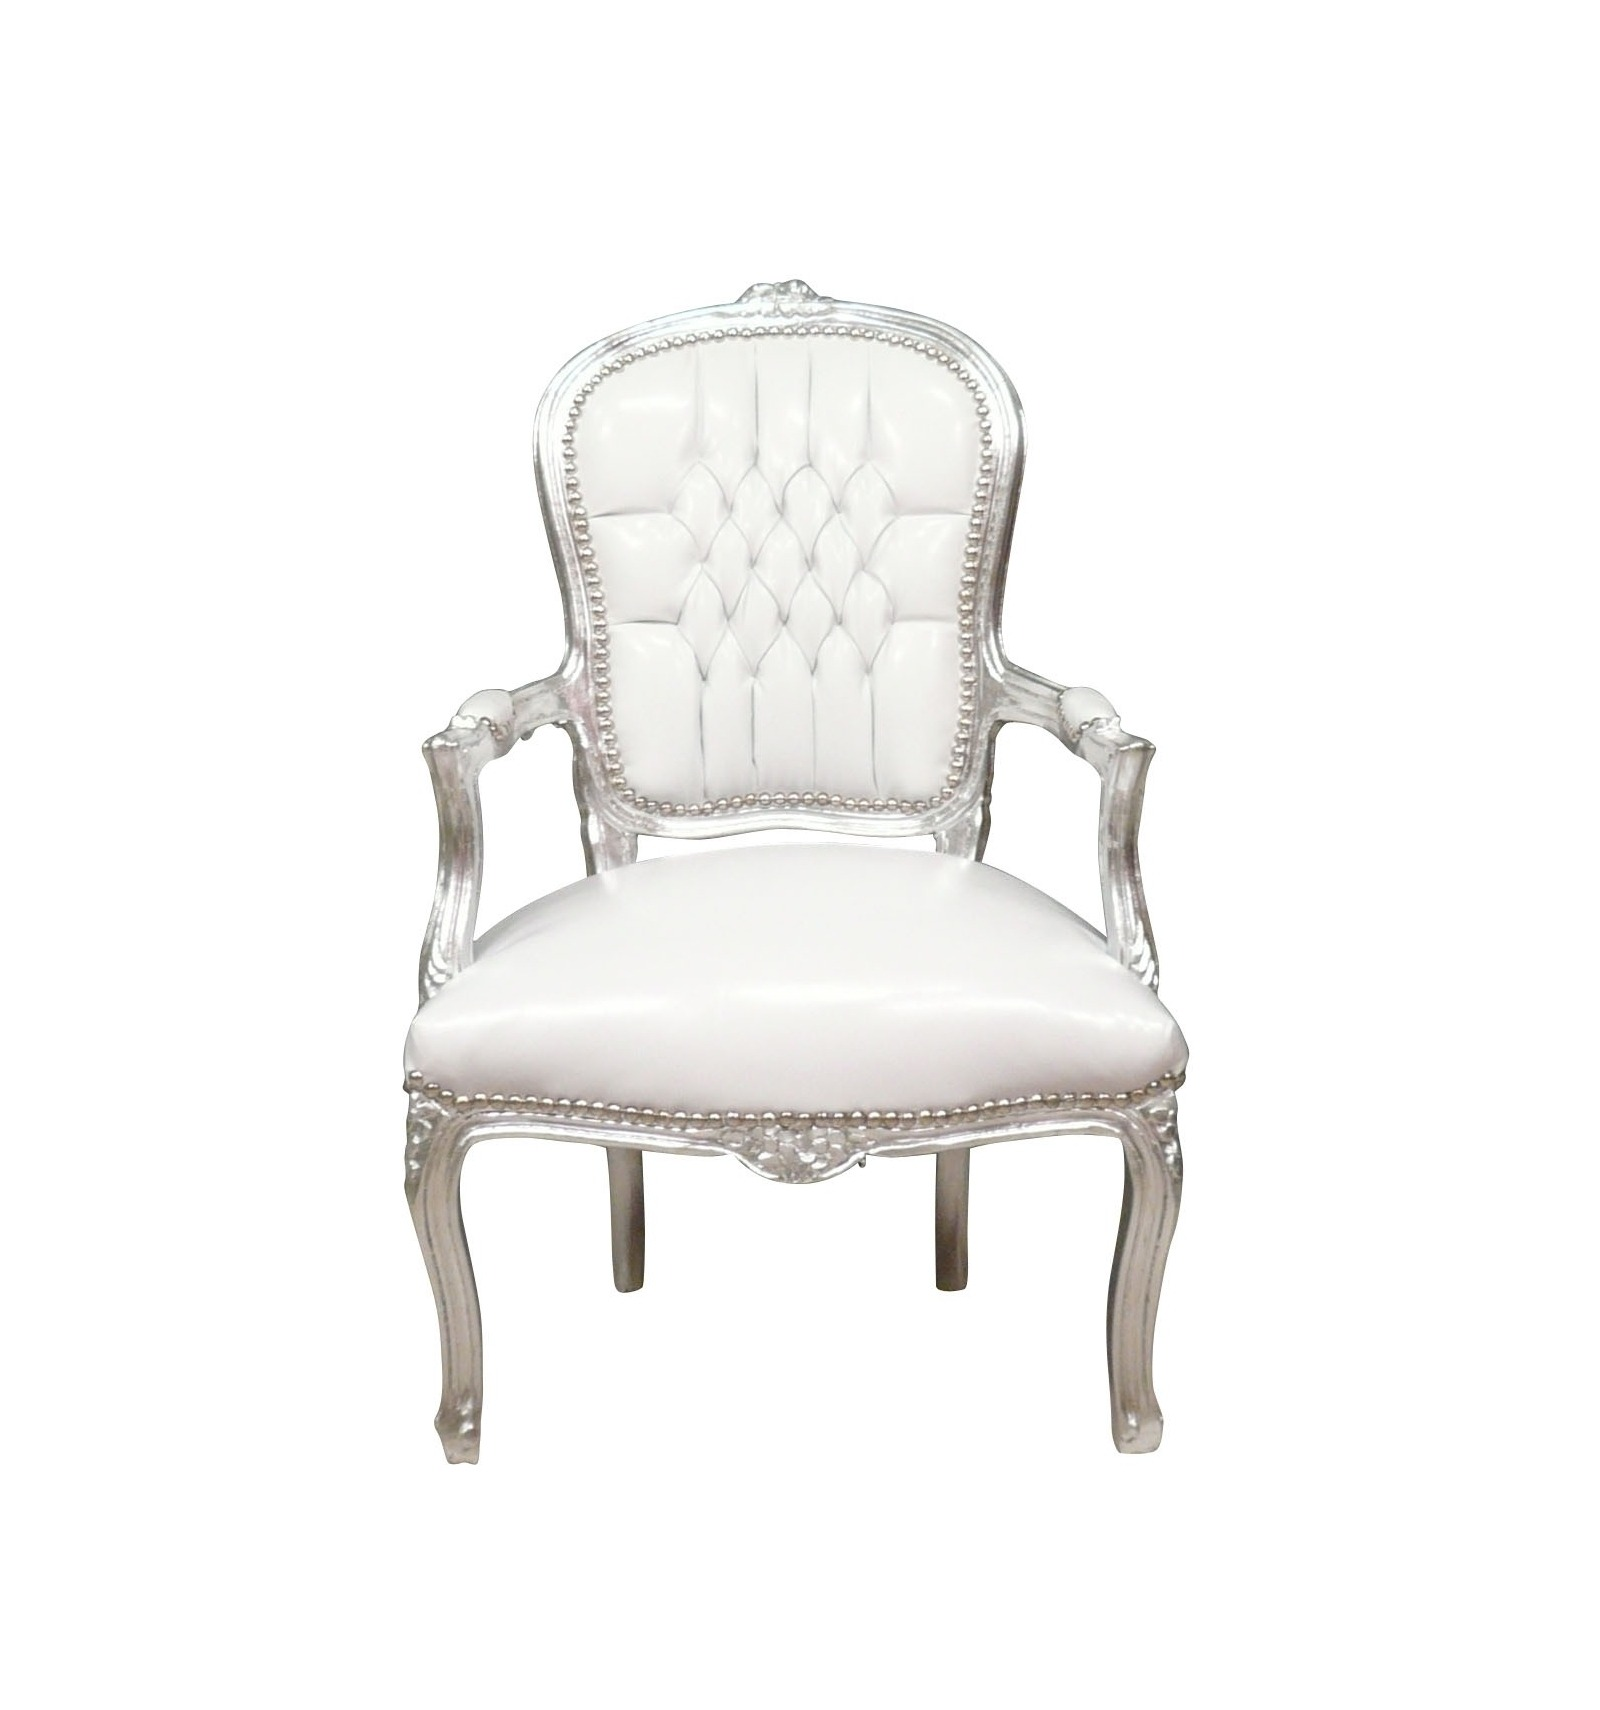 Armchair Baroque Louis Xv White And Silver Louis Xv